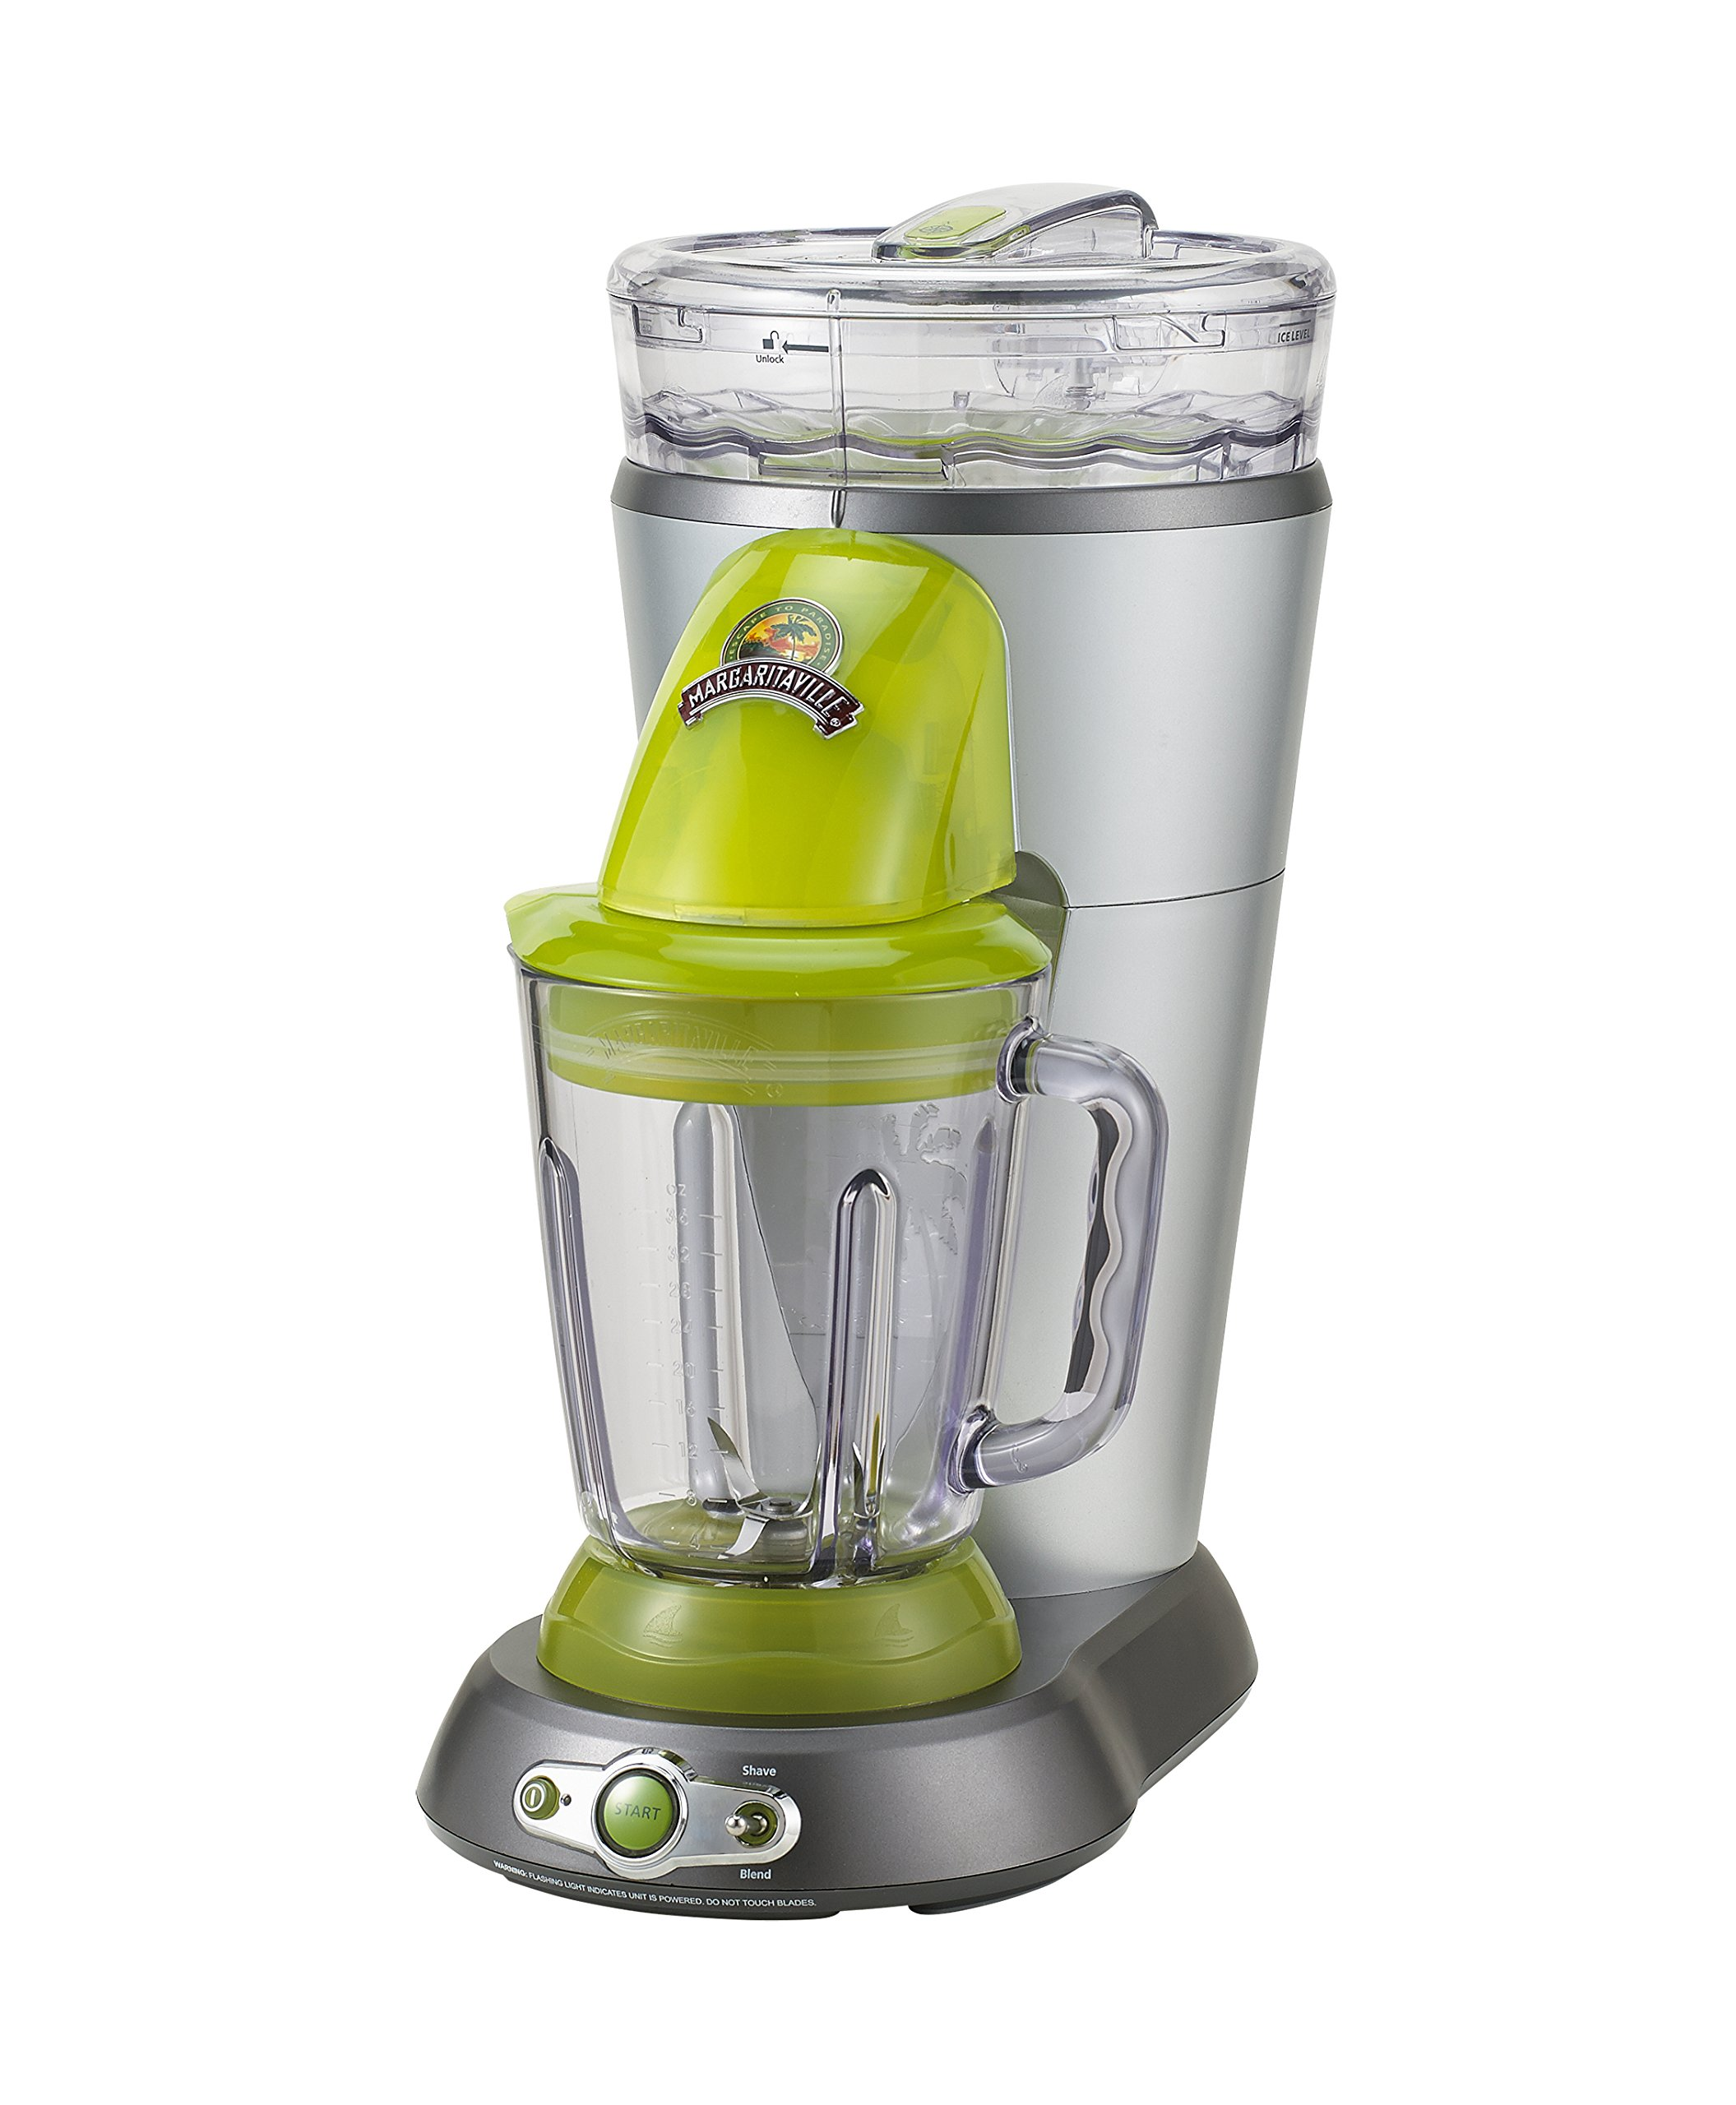 Margaritaville Bahamas Frozen Concoction Maker with No Brainer Mixer, DM0700 by Margaritaville